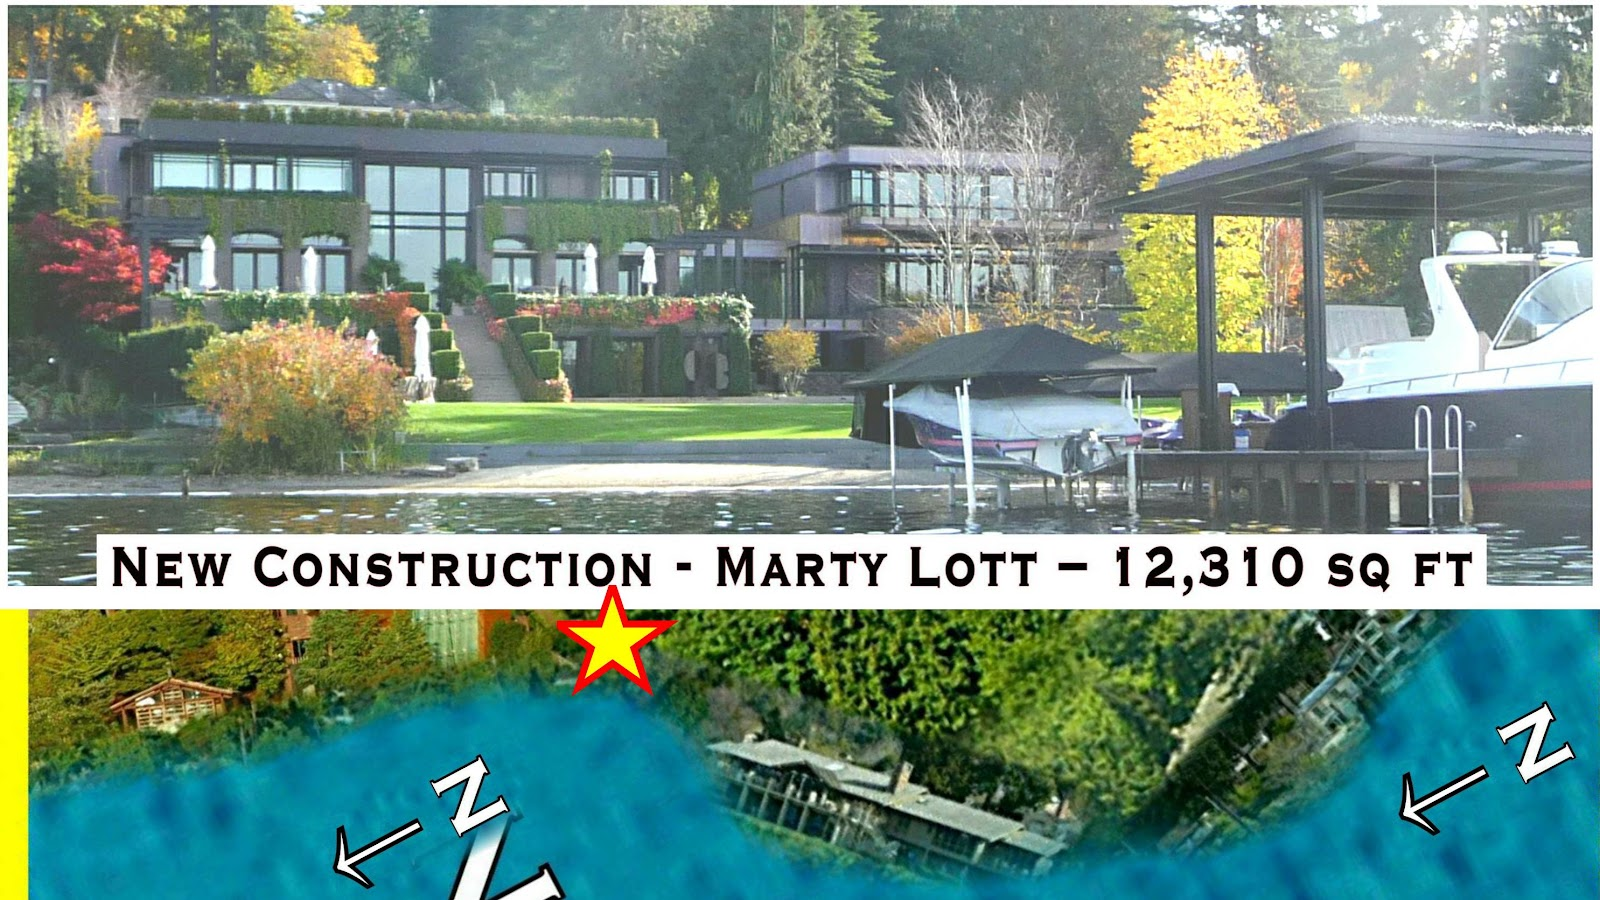 Lake washington cruising mercer island southwest mansions for King s fish house happy hour